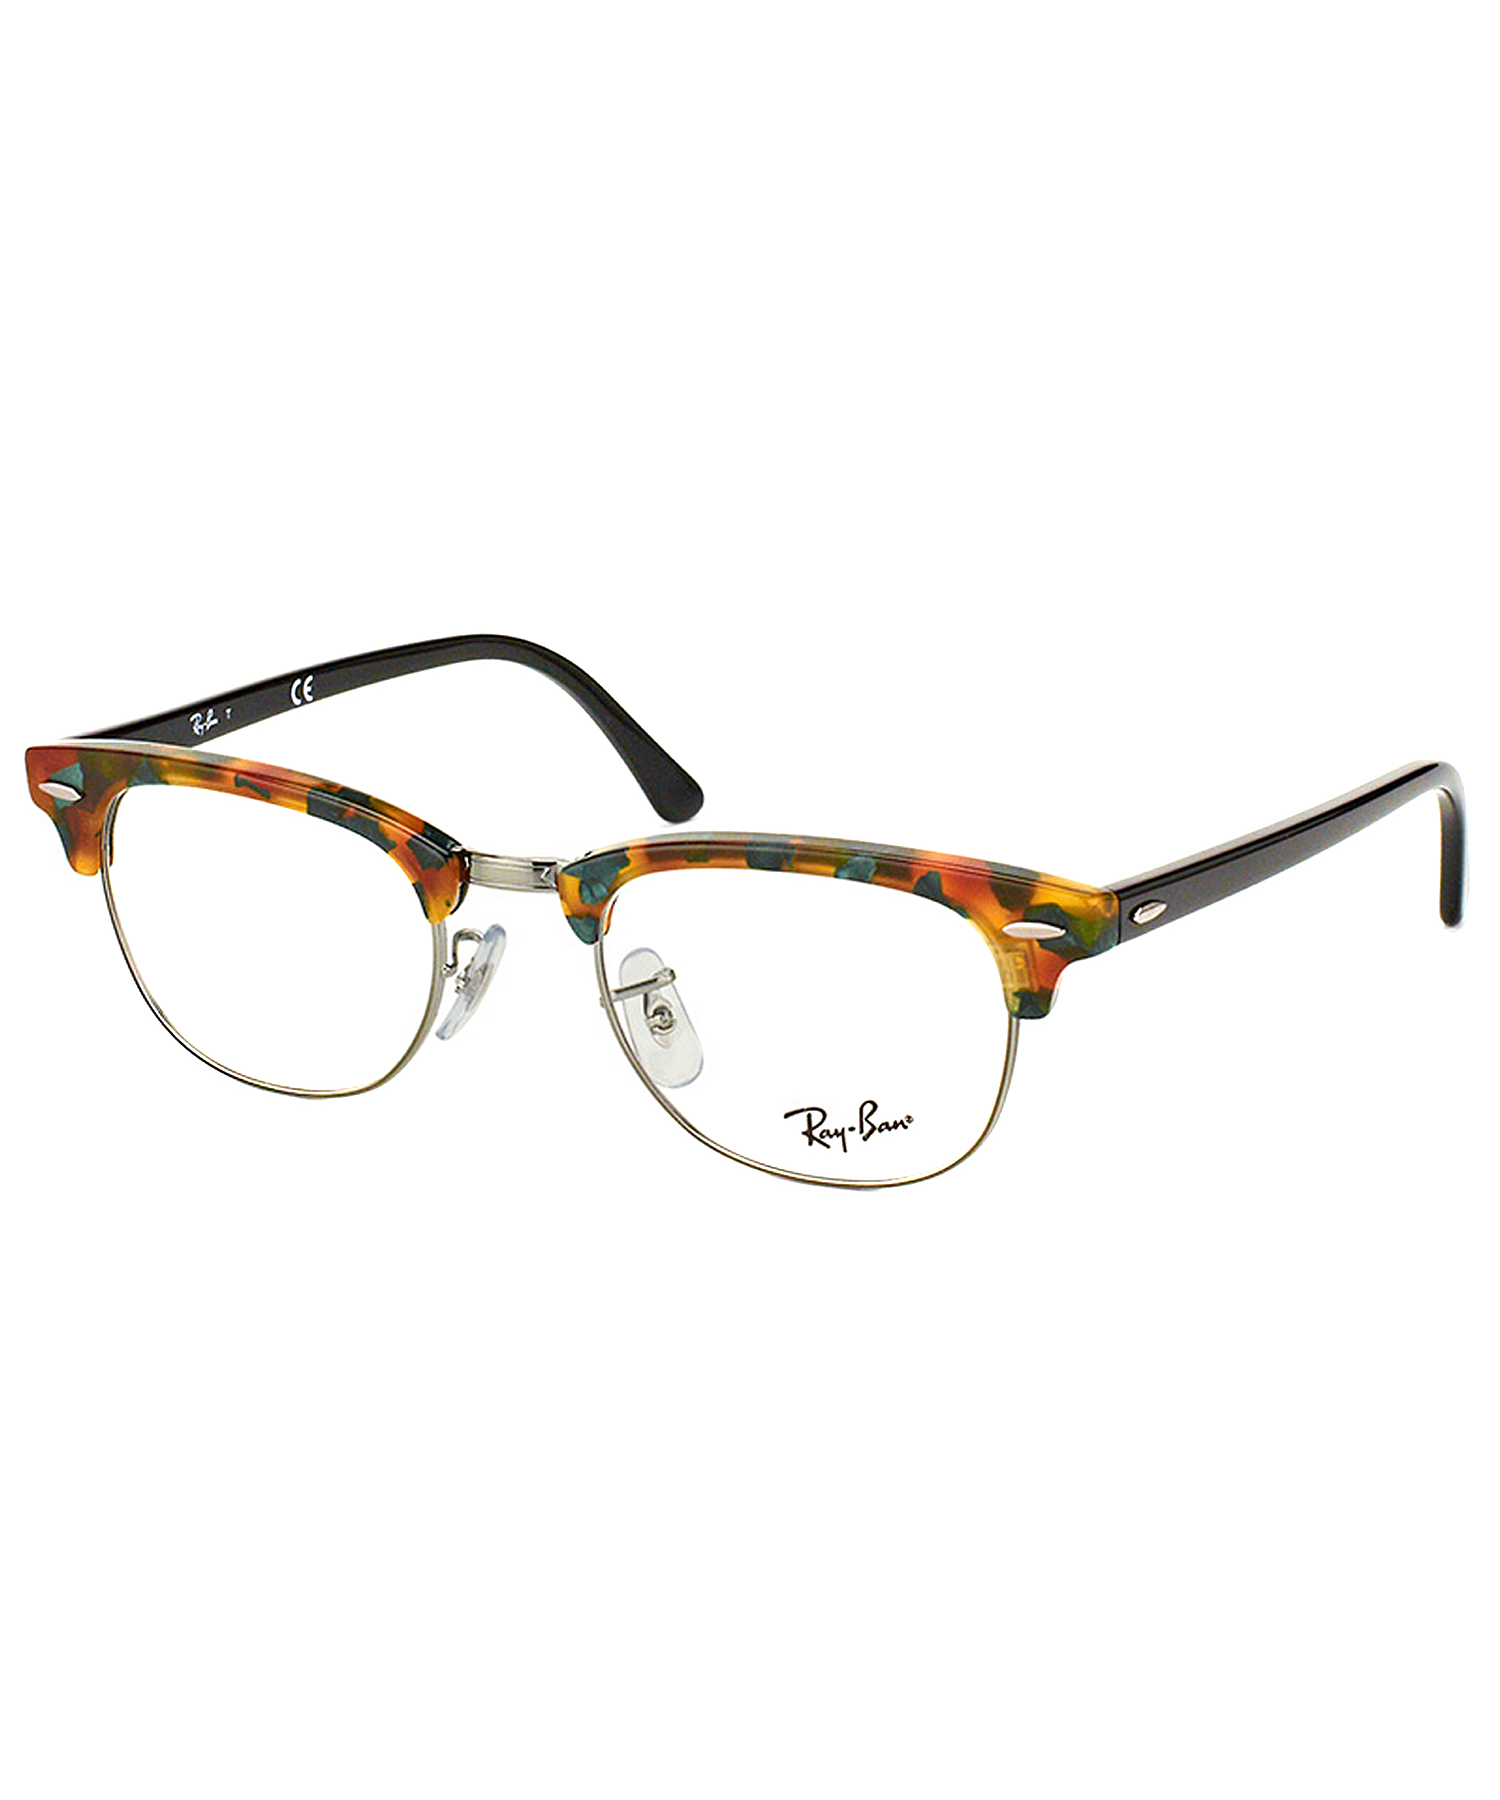 Ray-ban Clubmaster Plastic Eyeglasses in Green Lyst